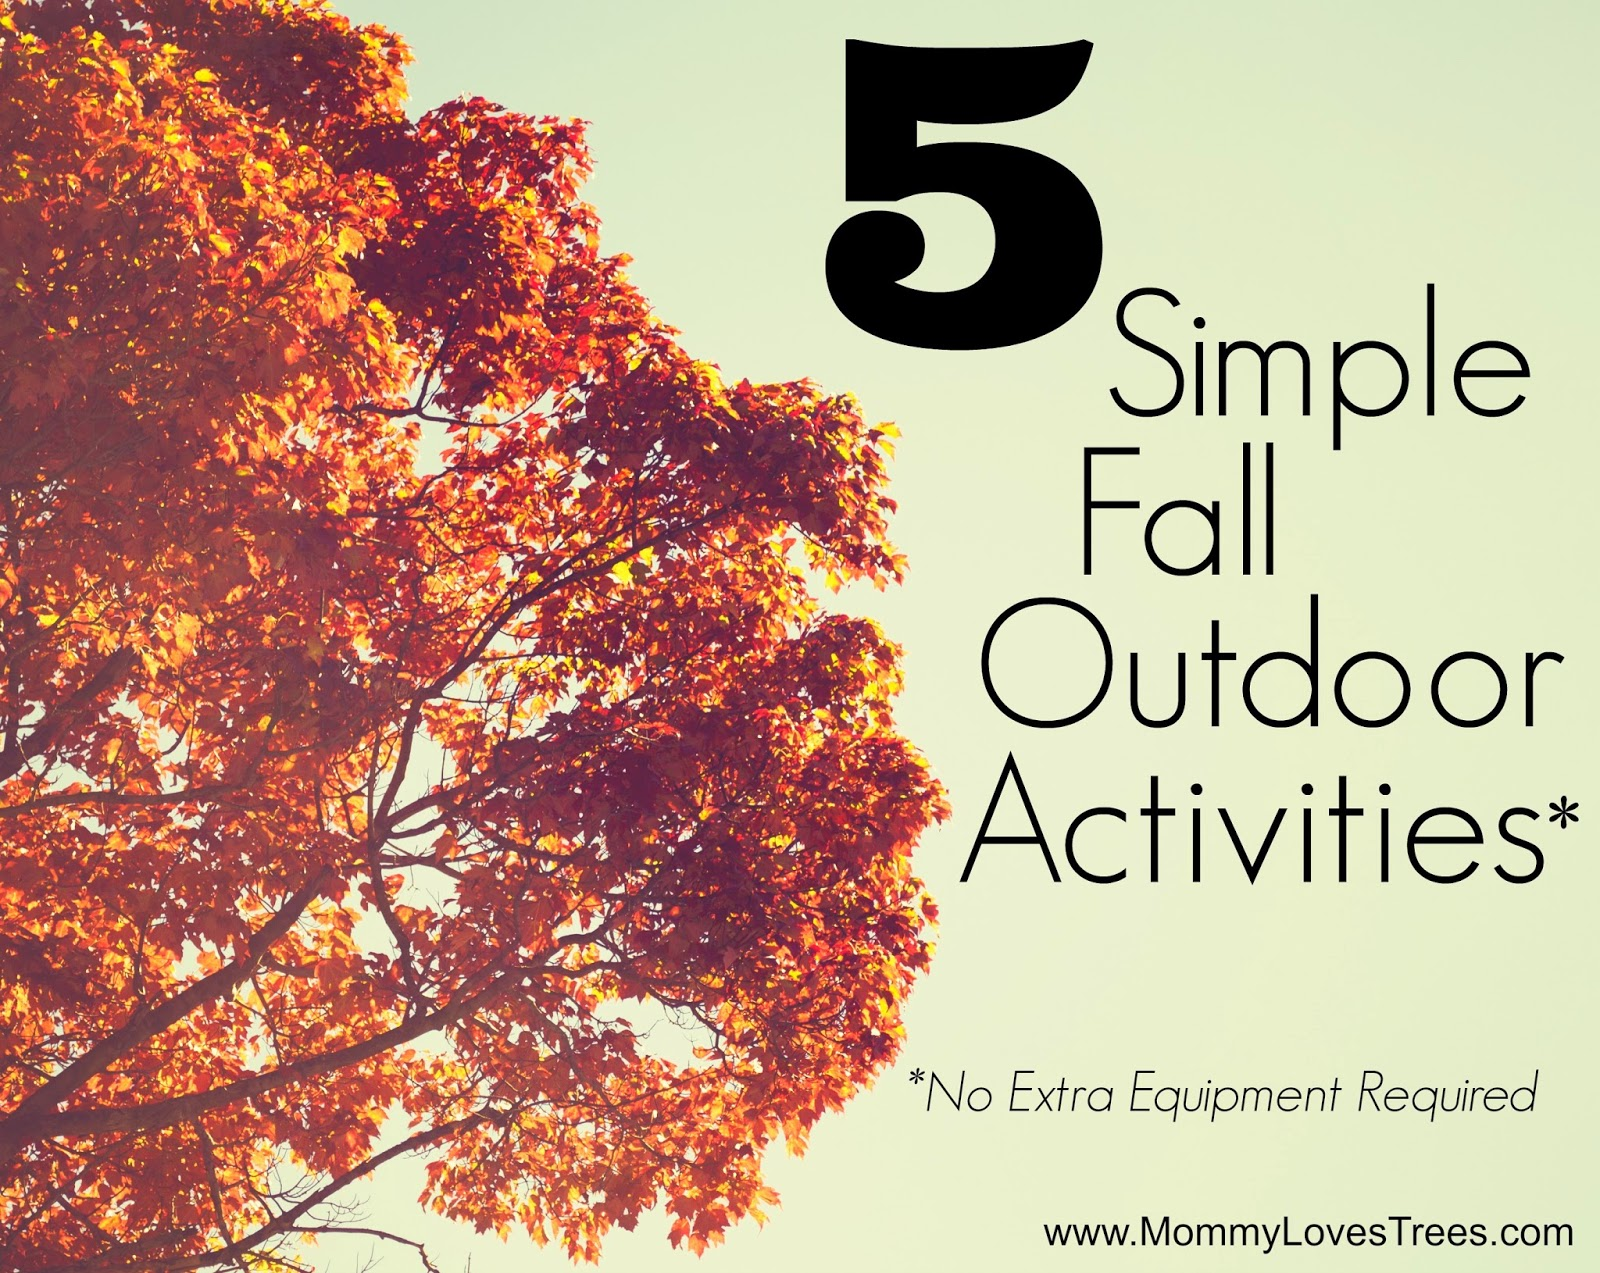 5 Simple Fall Activities: No Extra Equipment Required